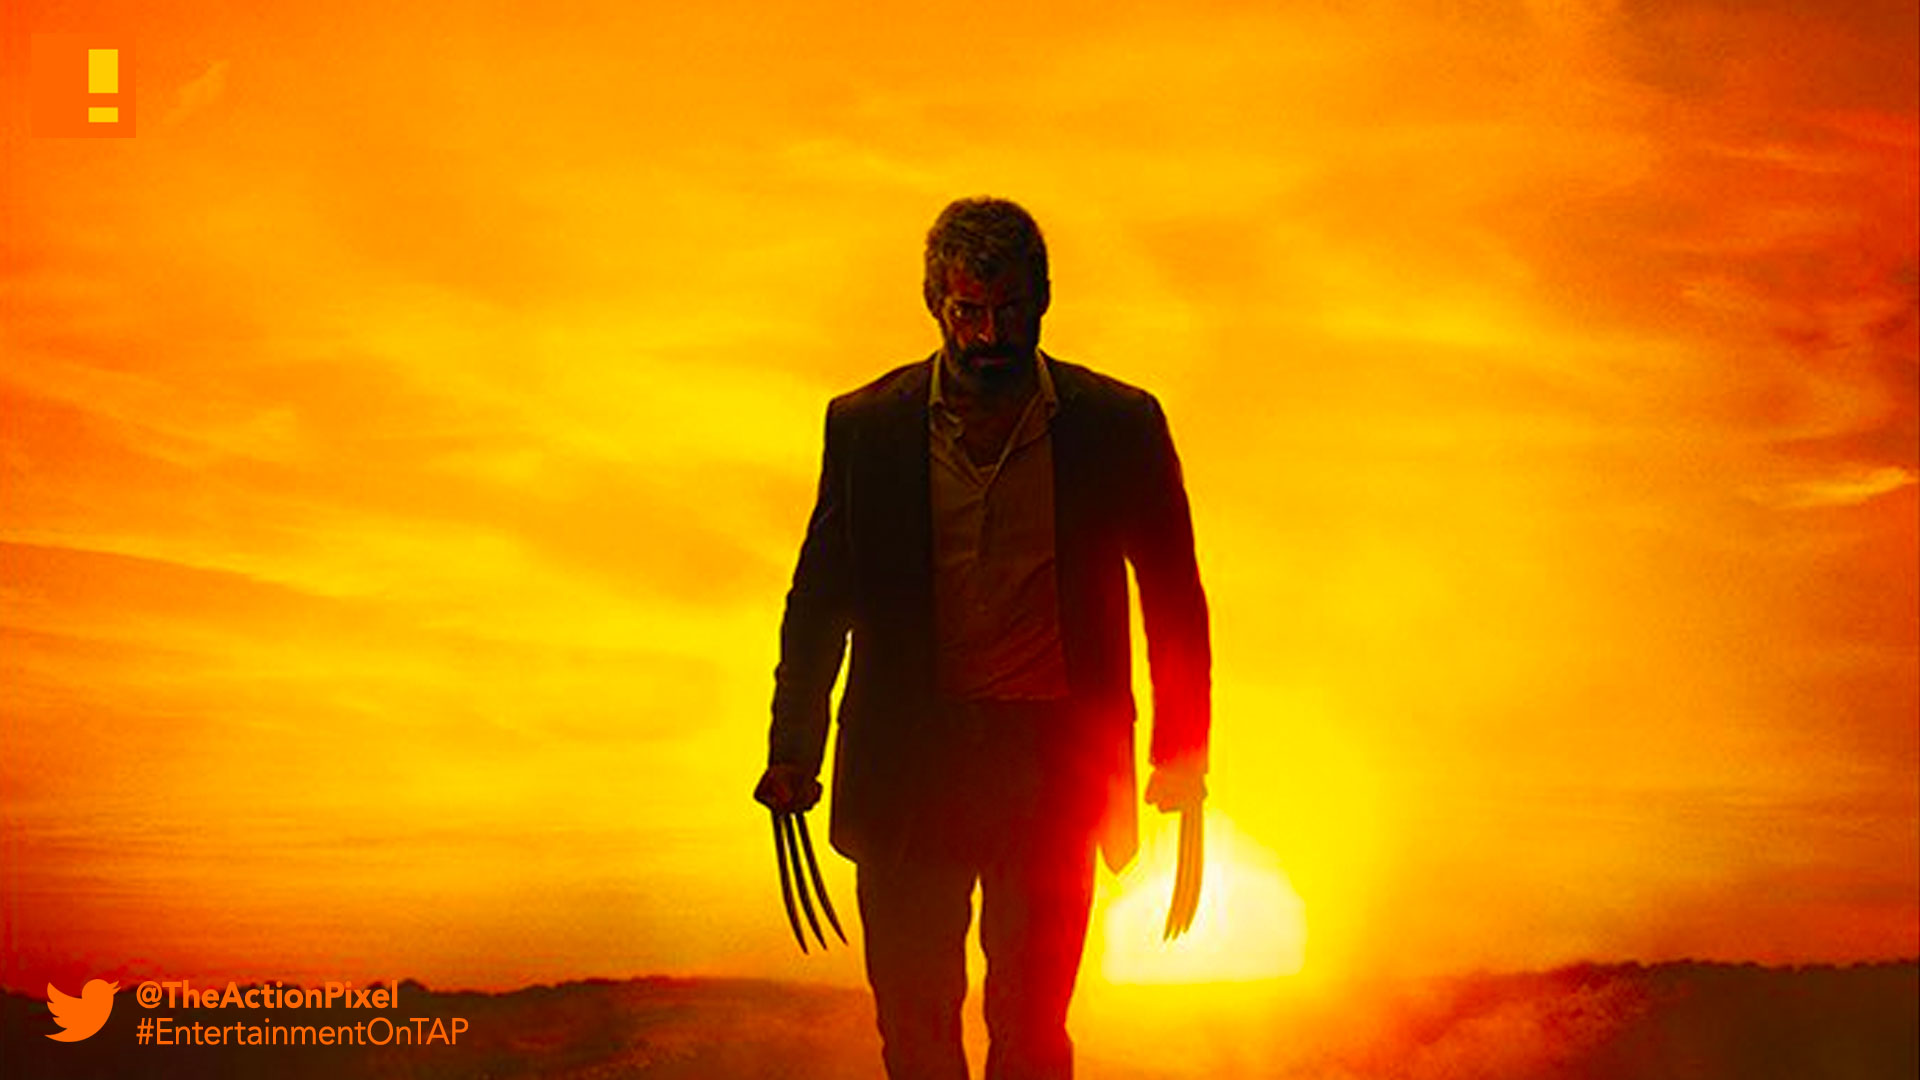 logan, wolverine,the action pixel,entertainment on tap,20th century fox,marvel, marvel comics,poster,